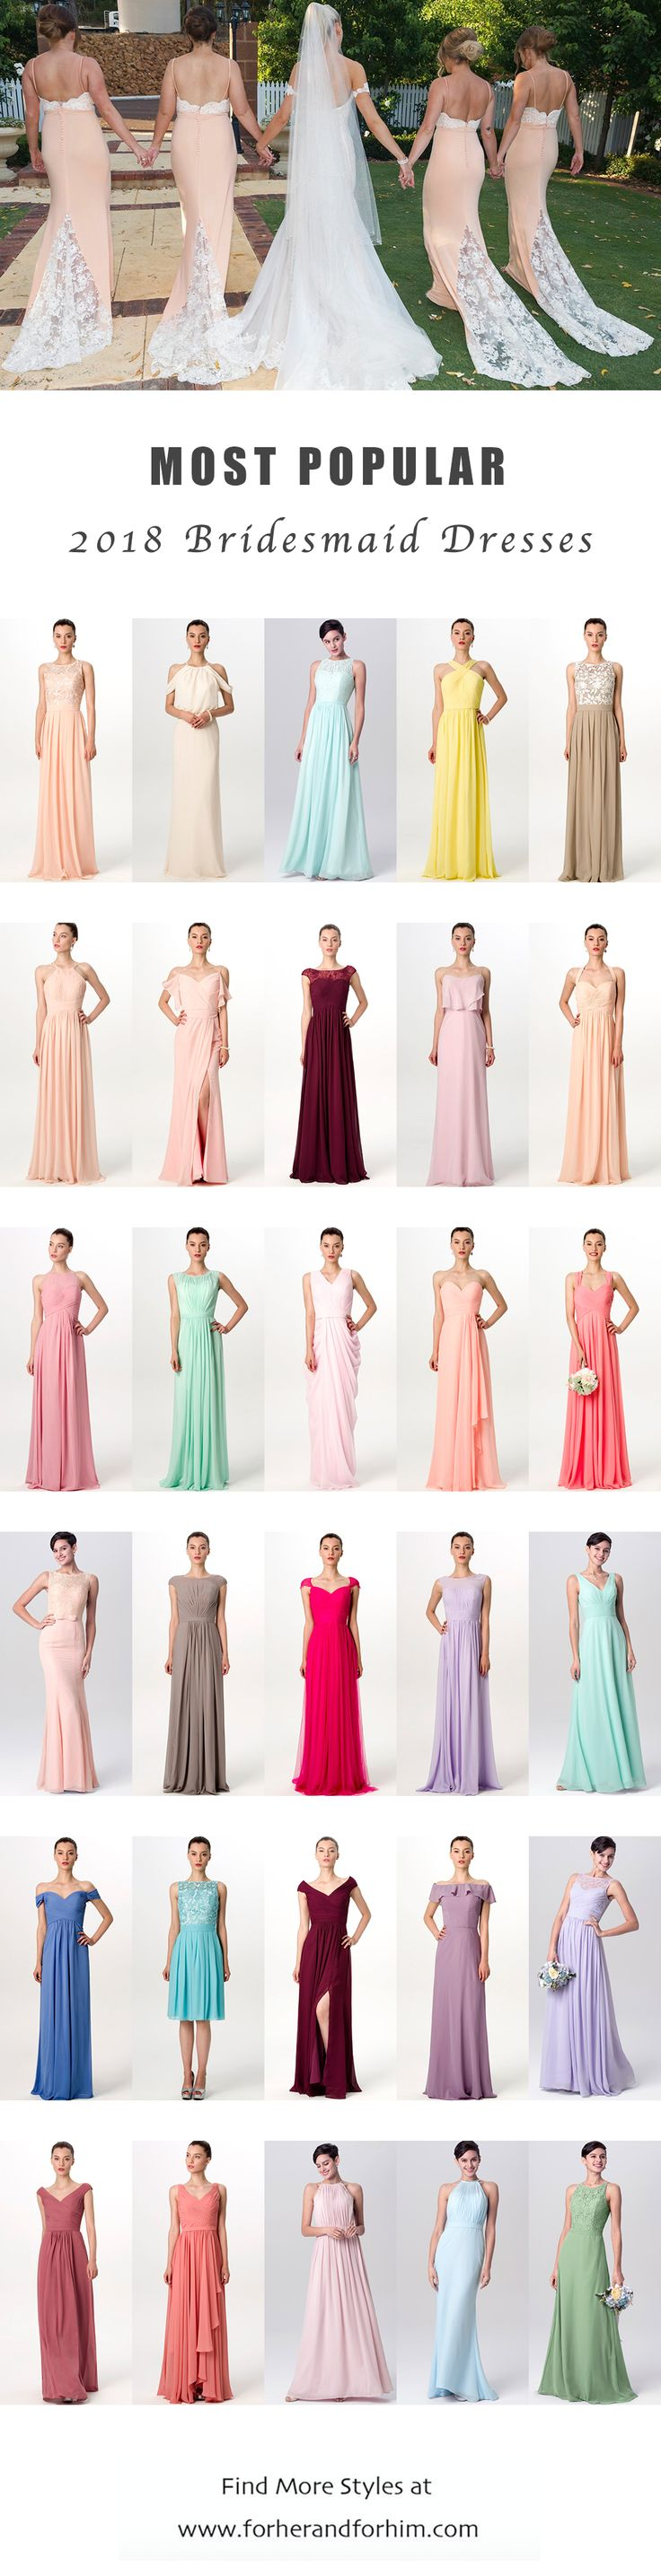 Most popular bridesmaid dresses from FHFH 2018 collection! All styles are on huge sale NOW! Check it out!